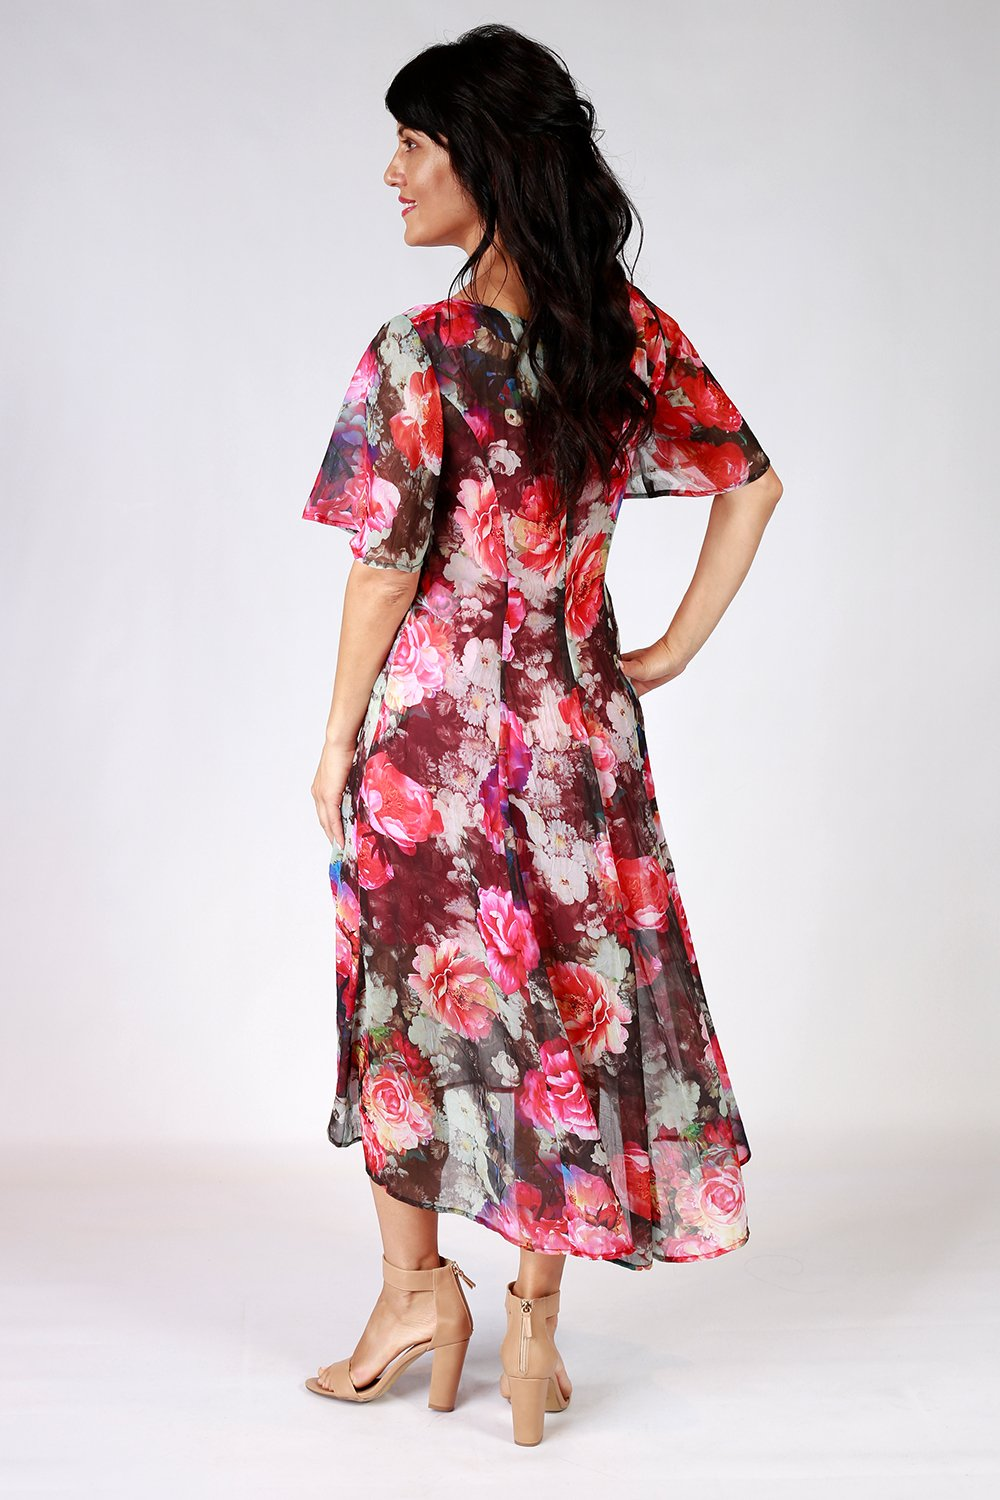 Darla Dress | Annah Stretton | Floral Dress | Occasion Dress | Annah Stretton Fashion | Designer Dress